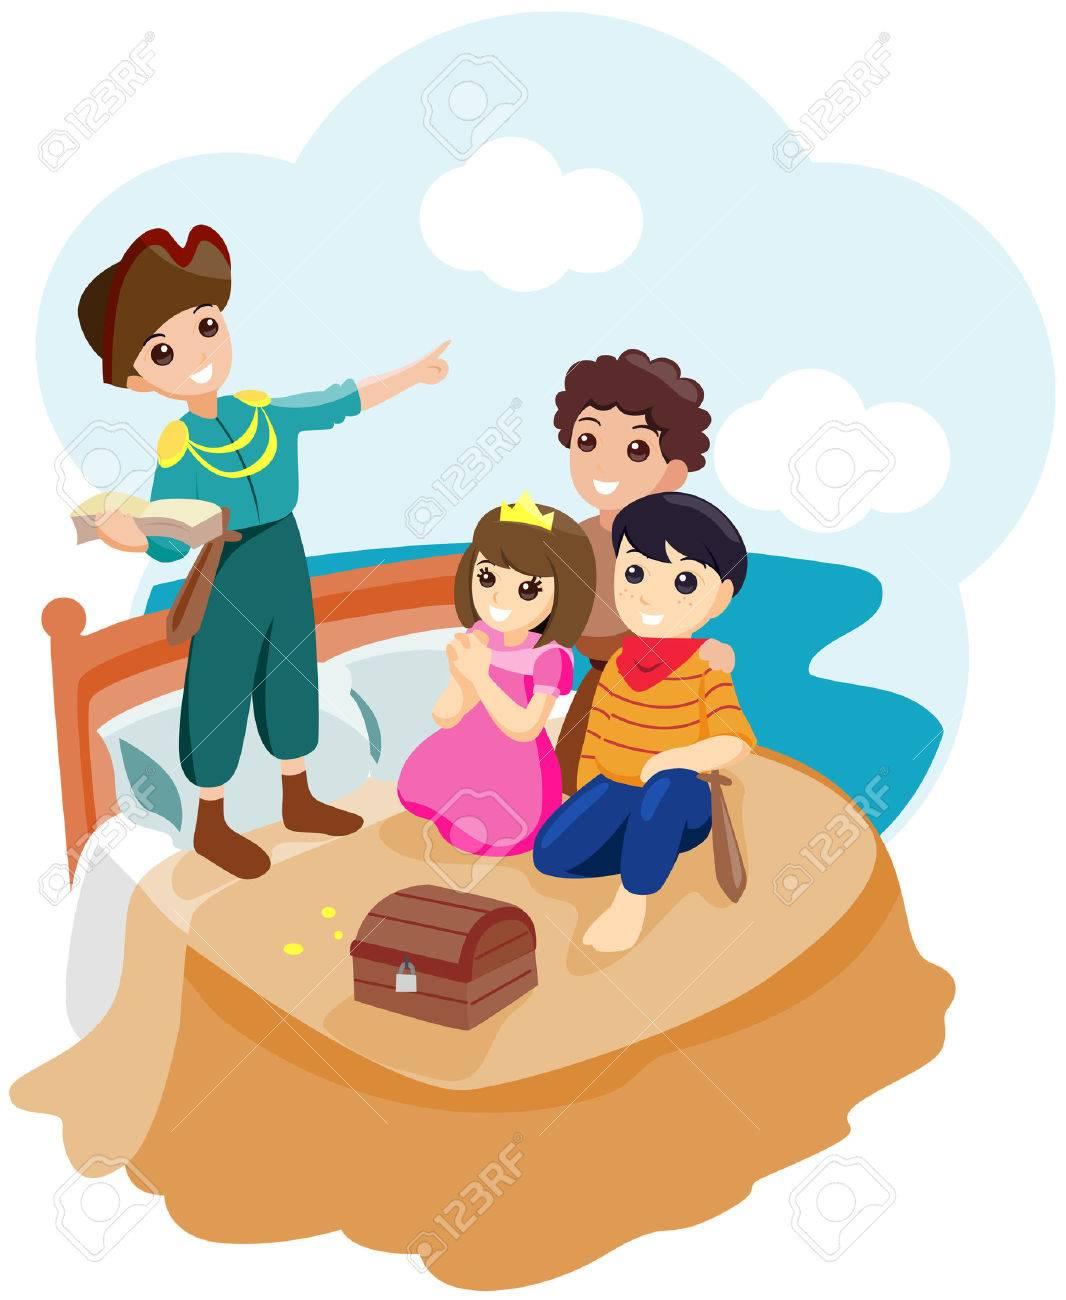 storytelling illustration with clipping path royalty free cliparts rh 123rf com Storytelling Graphics Campfire Storytelling